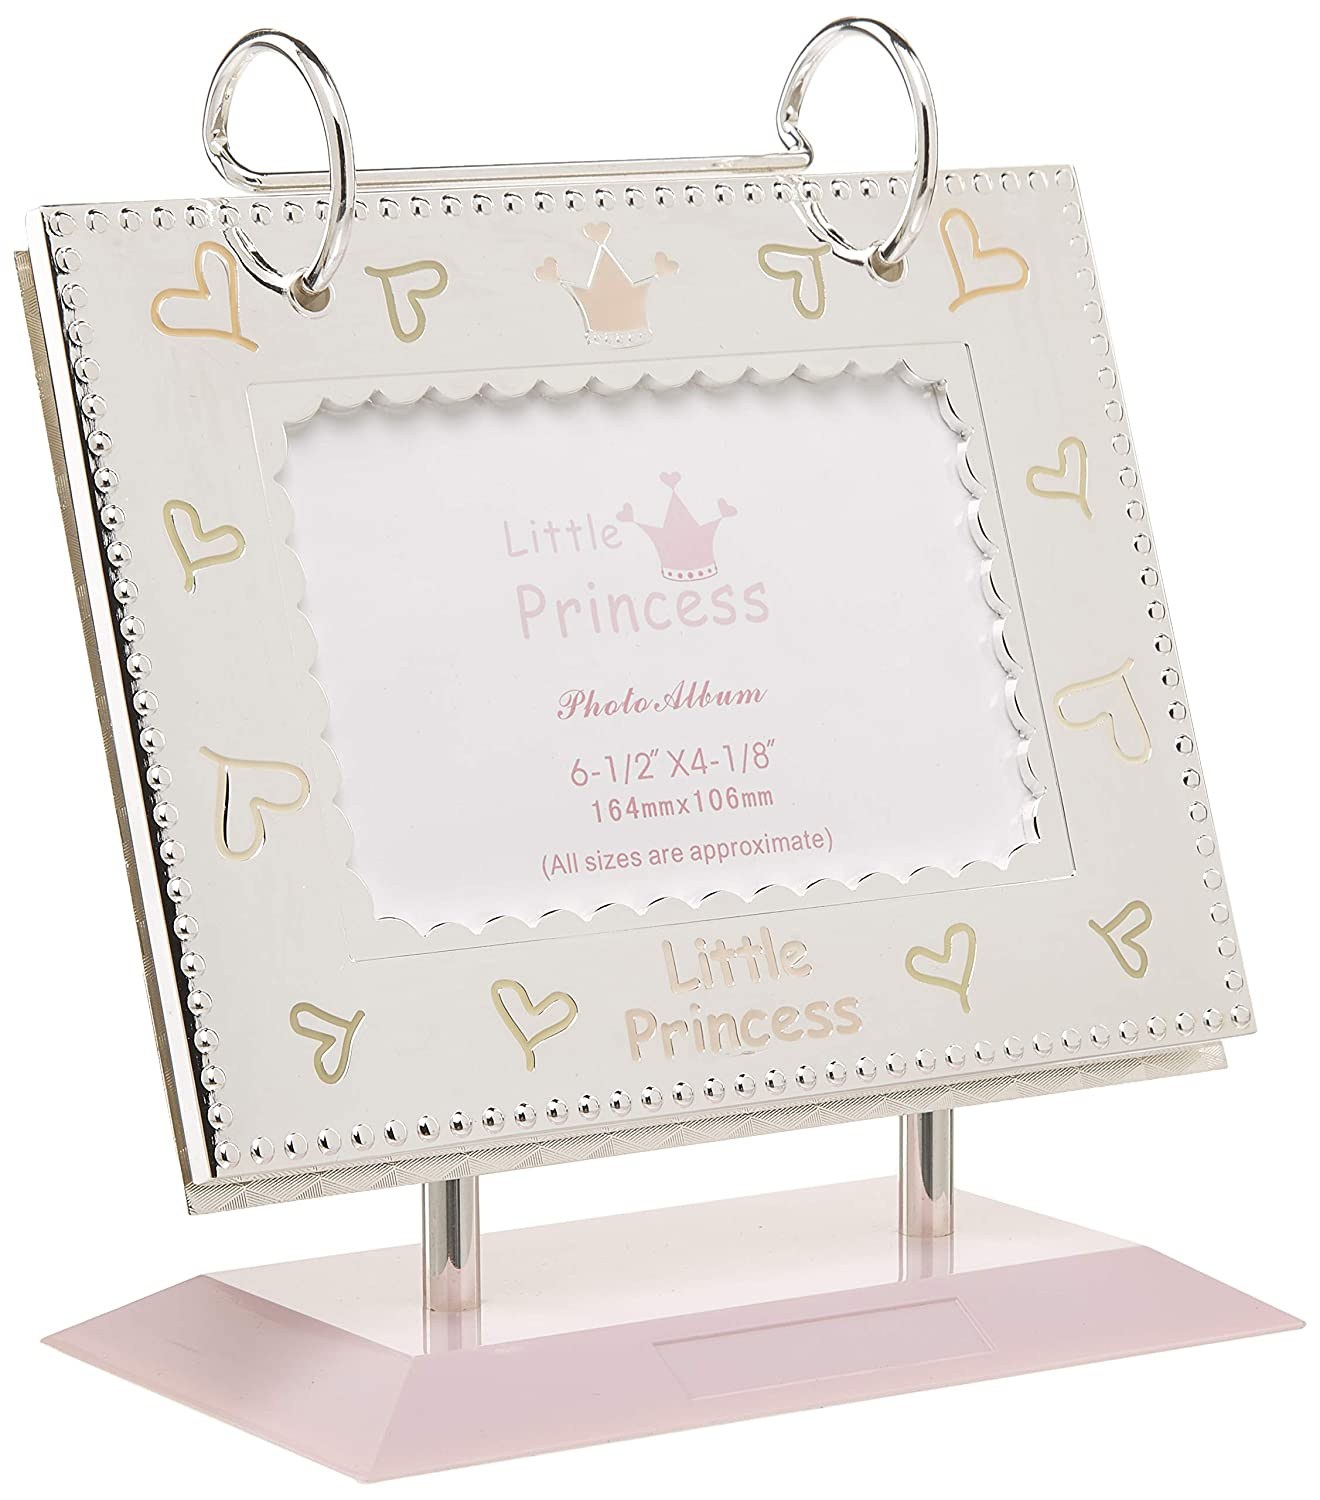 Elegance Little Princess Flip Fixed price for sale Album Opening large release sale Photo Inserts 4x6